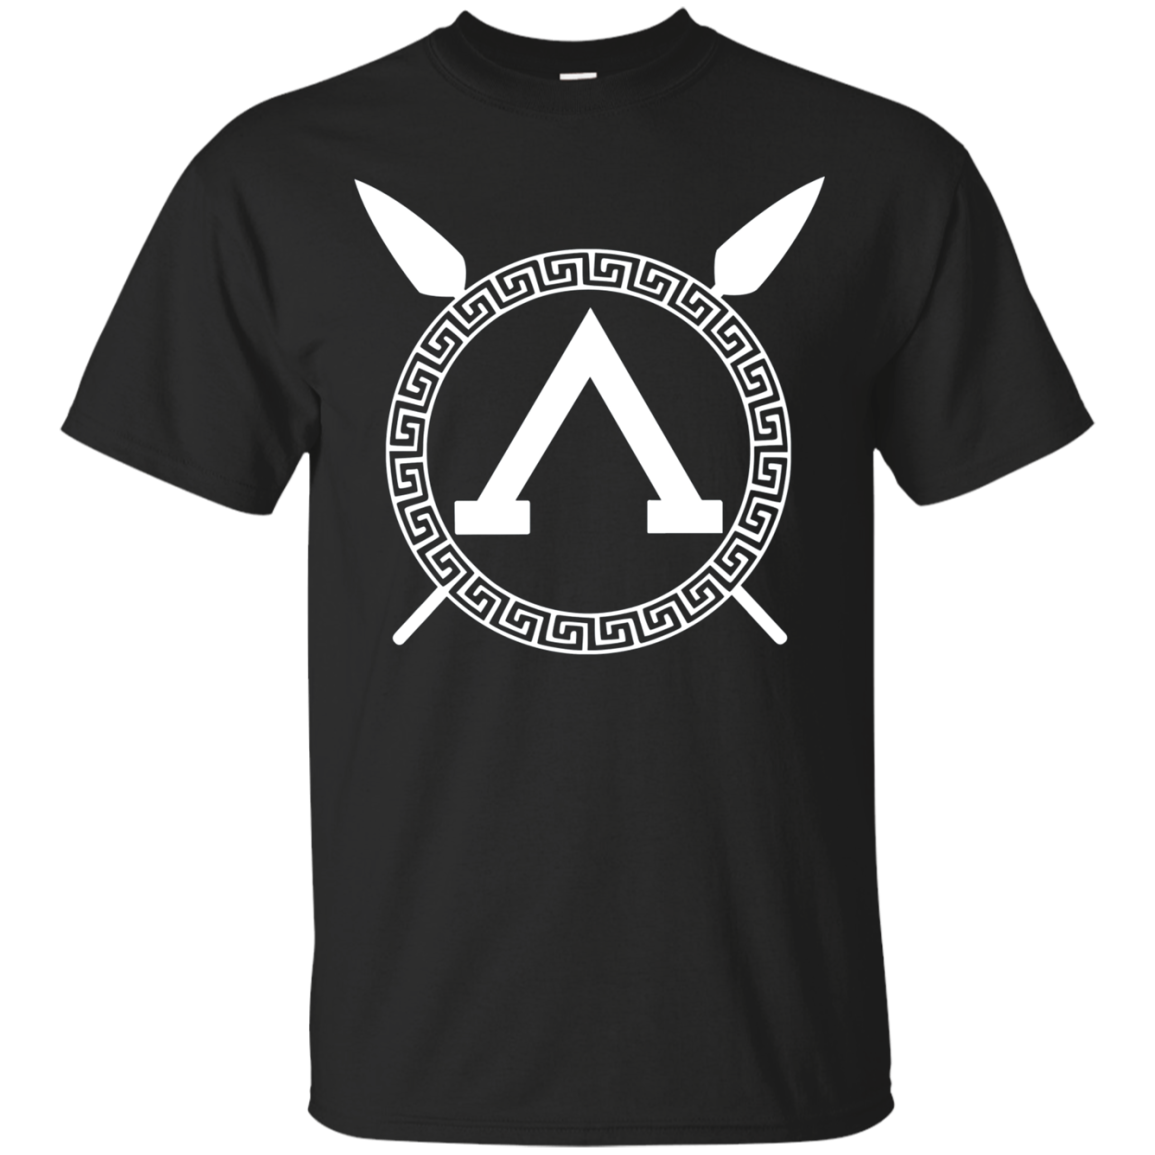 Spartan Warrior Spears and Shield T-shirt